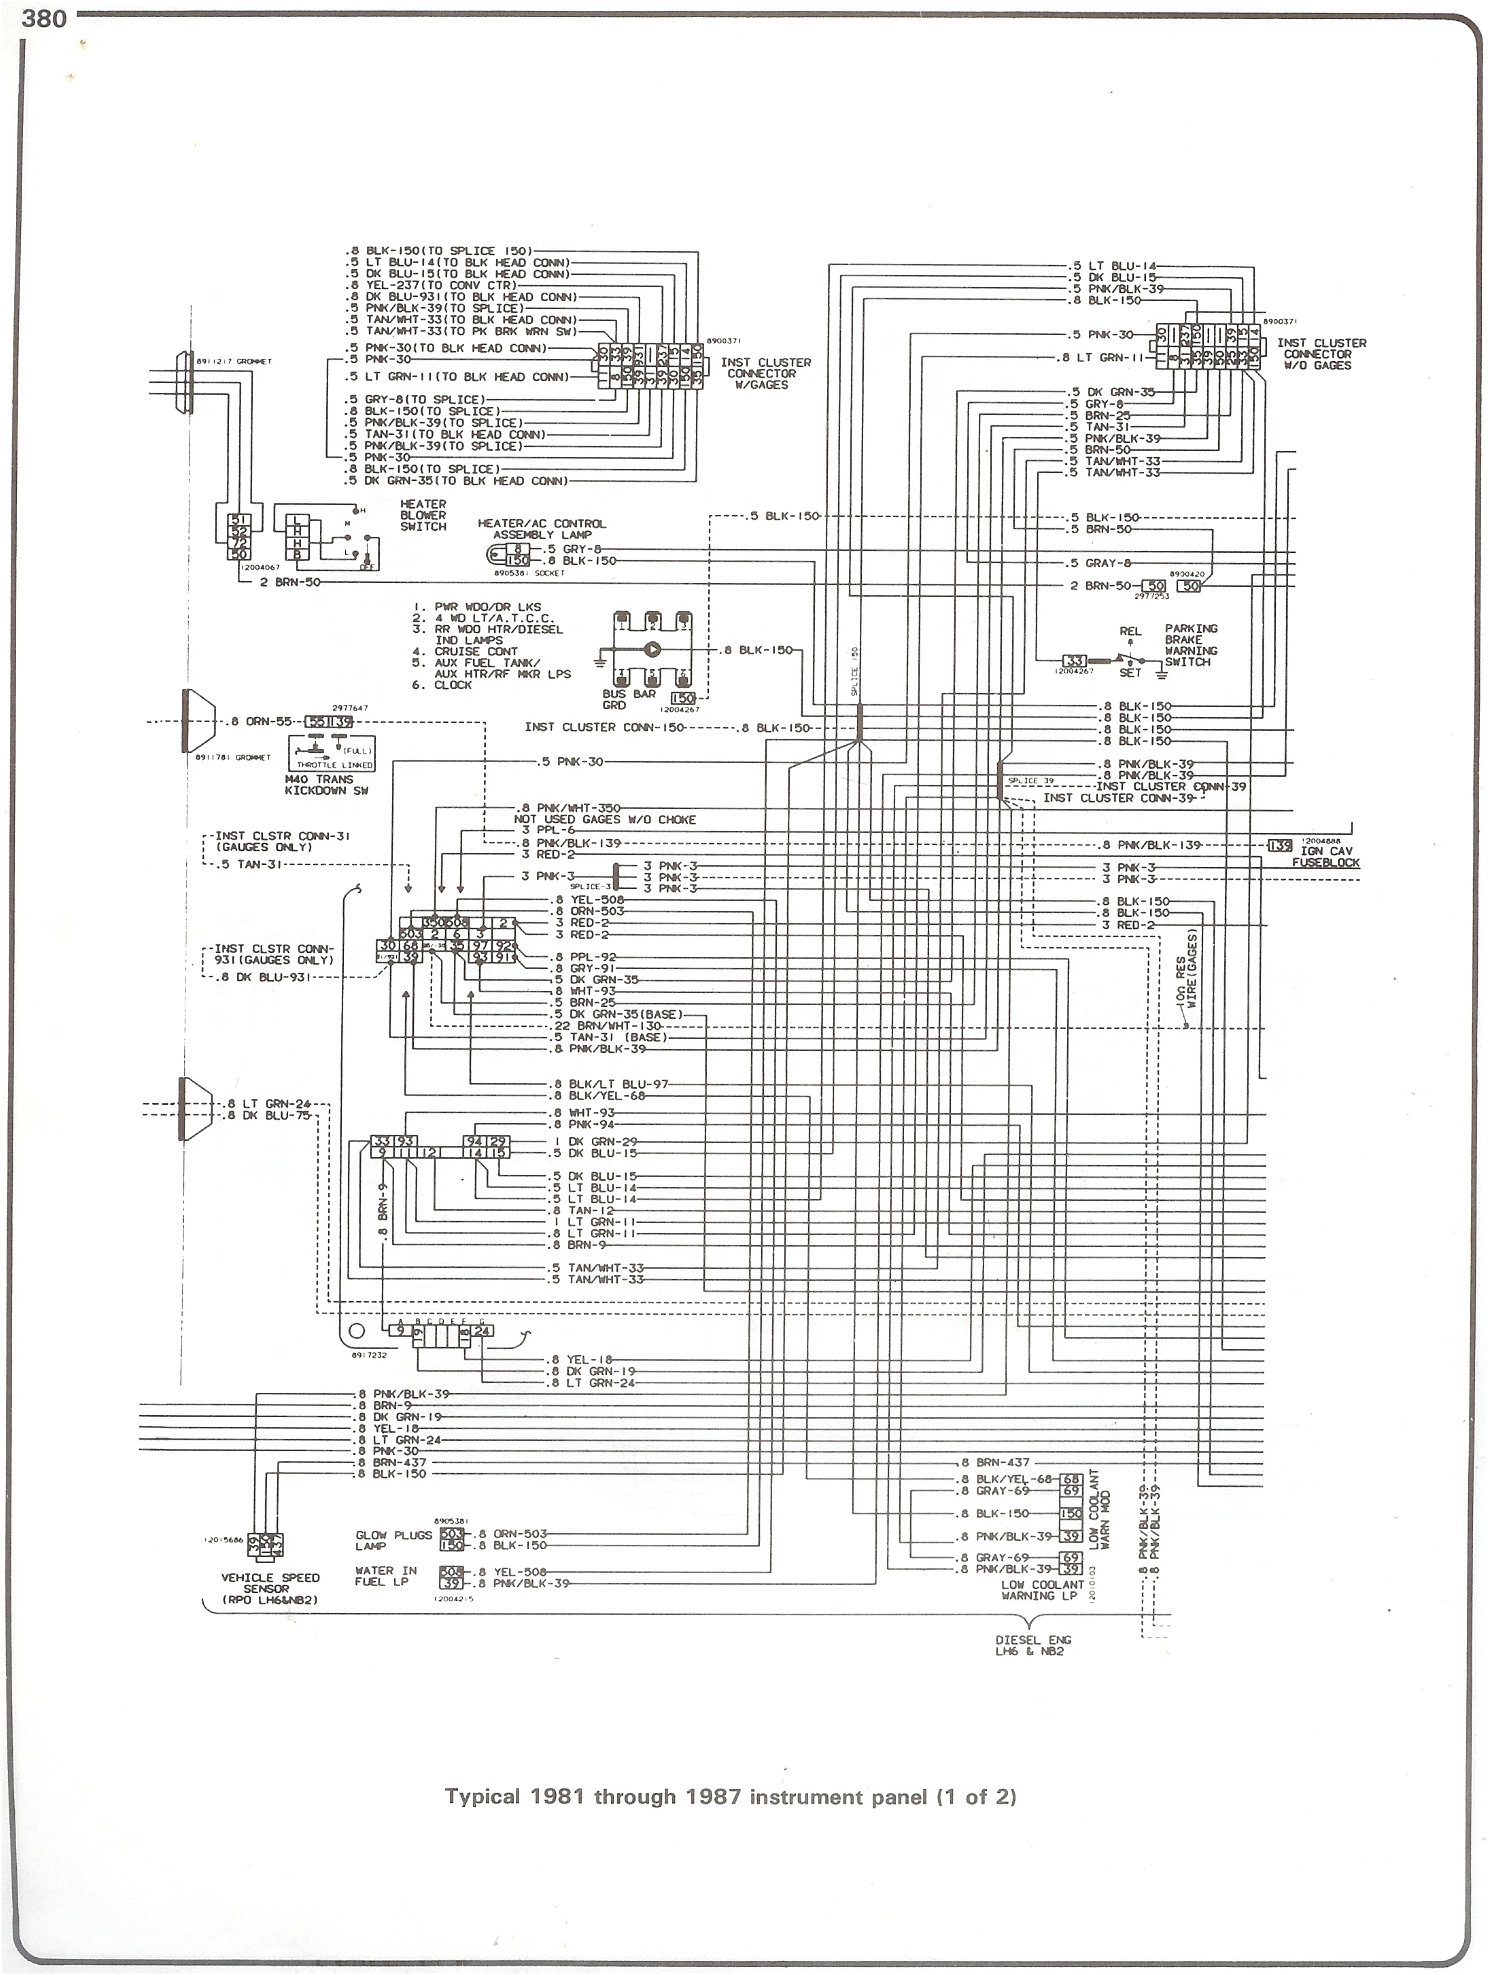 hight resolution of 1985 chevy truck wiring schematic wiring diagram todays chevy truck wiring harness diagram 1985 chevy truck instrument cluster wiring diagram